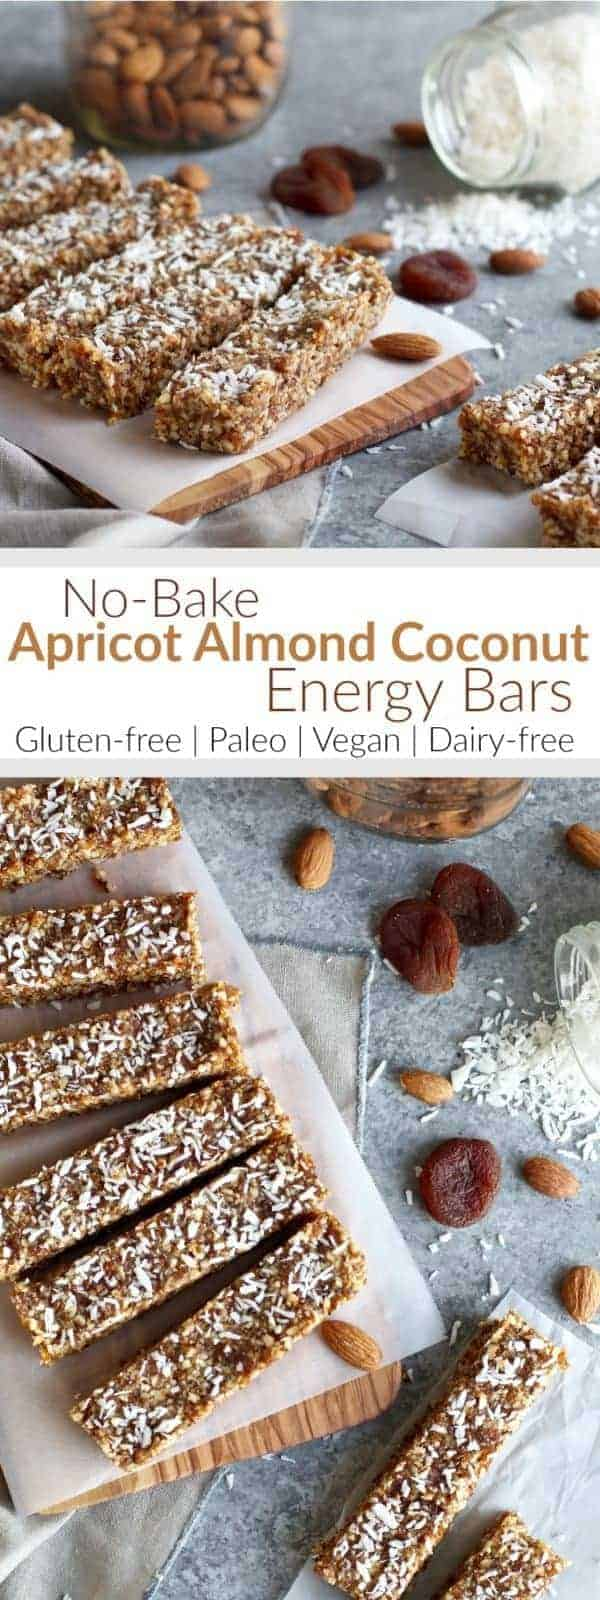 Up level your snack game with these vegan & paleo friendly, refined sugar-free, no-bake Apricot Almond Coconut Energy Bars. A perfectly packable and tasty snack. | The Real Food Dietitians | https://therealfoodrds.com/apricot-almond-coconut-energy-bars/